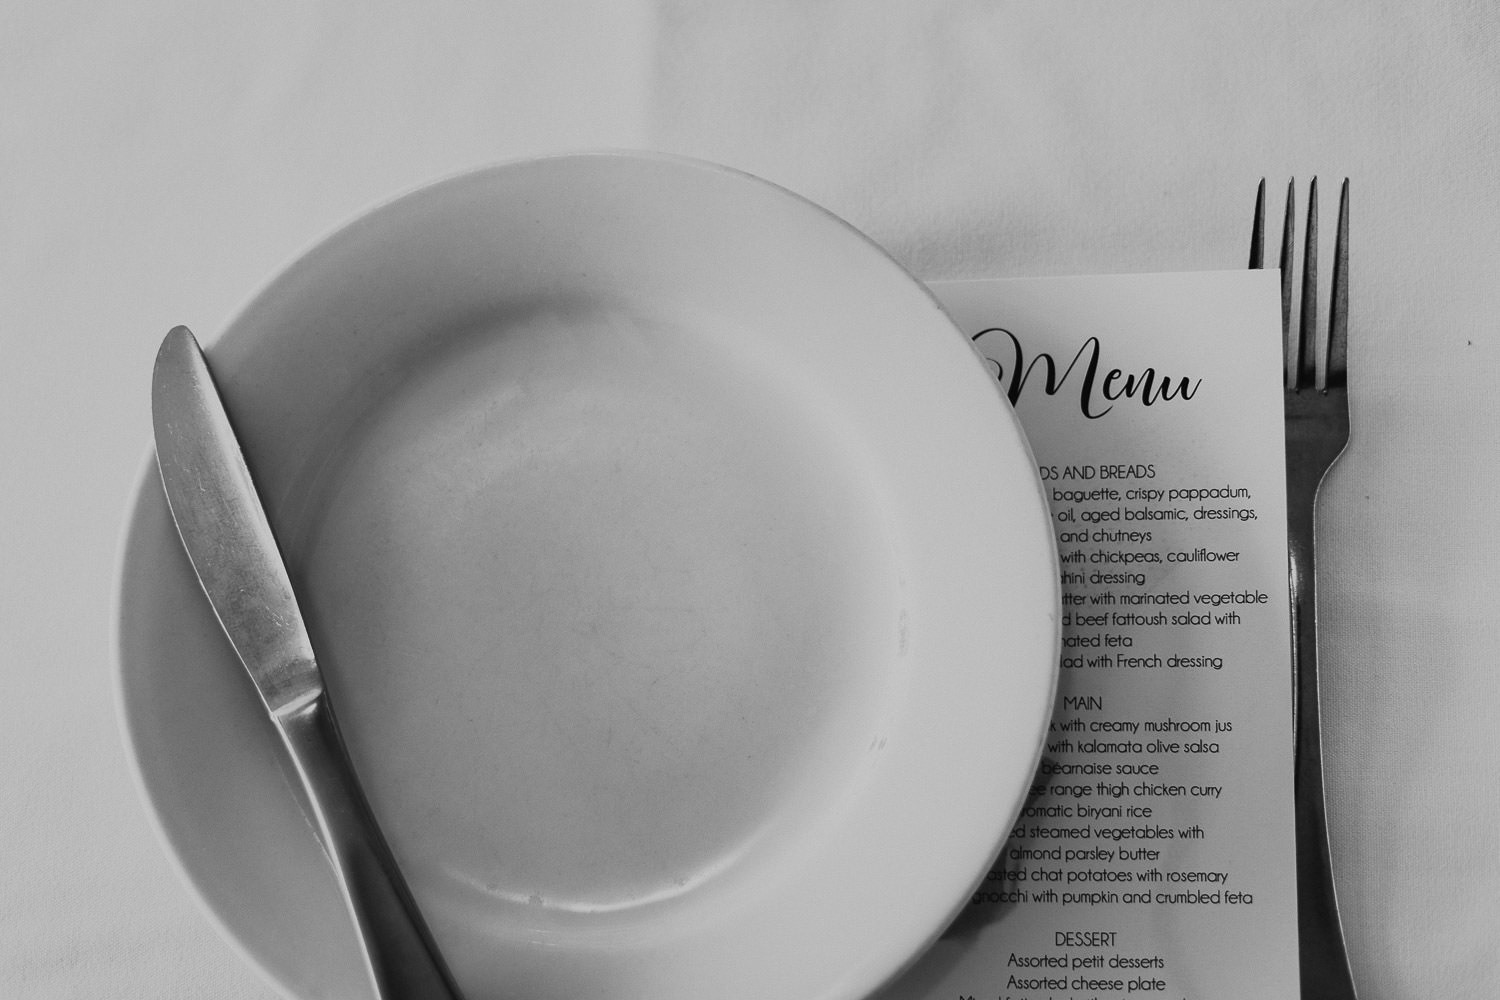 Table setting and Dinner menu